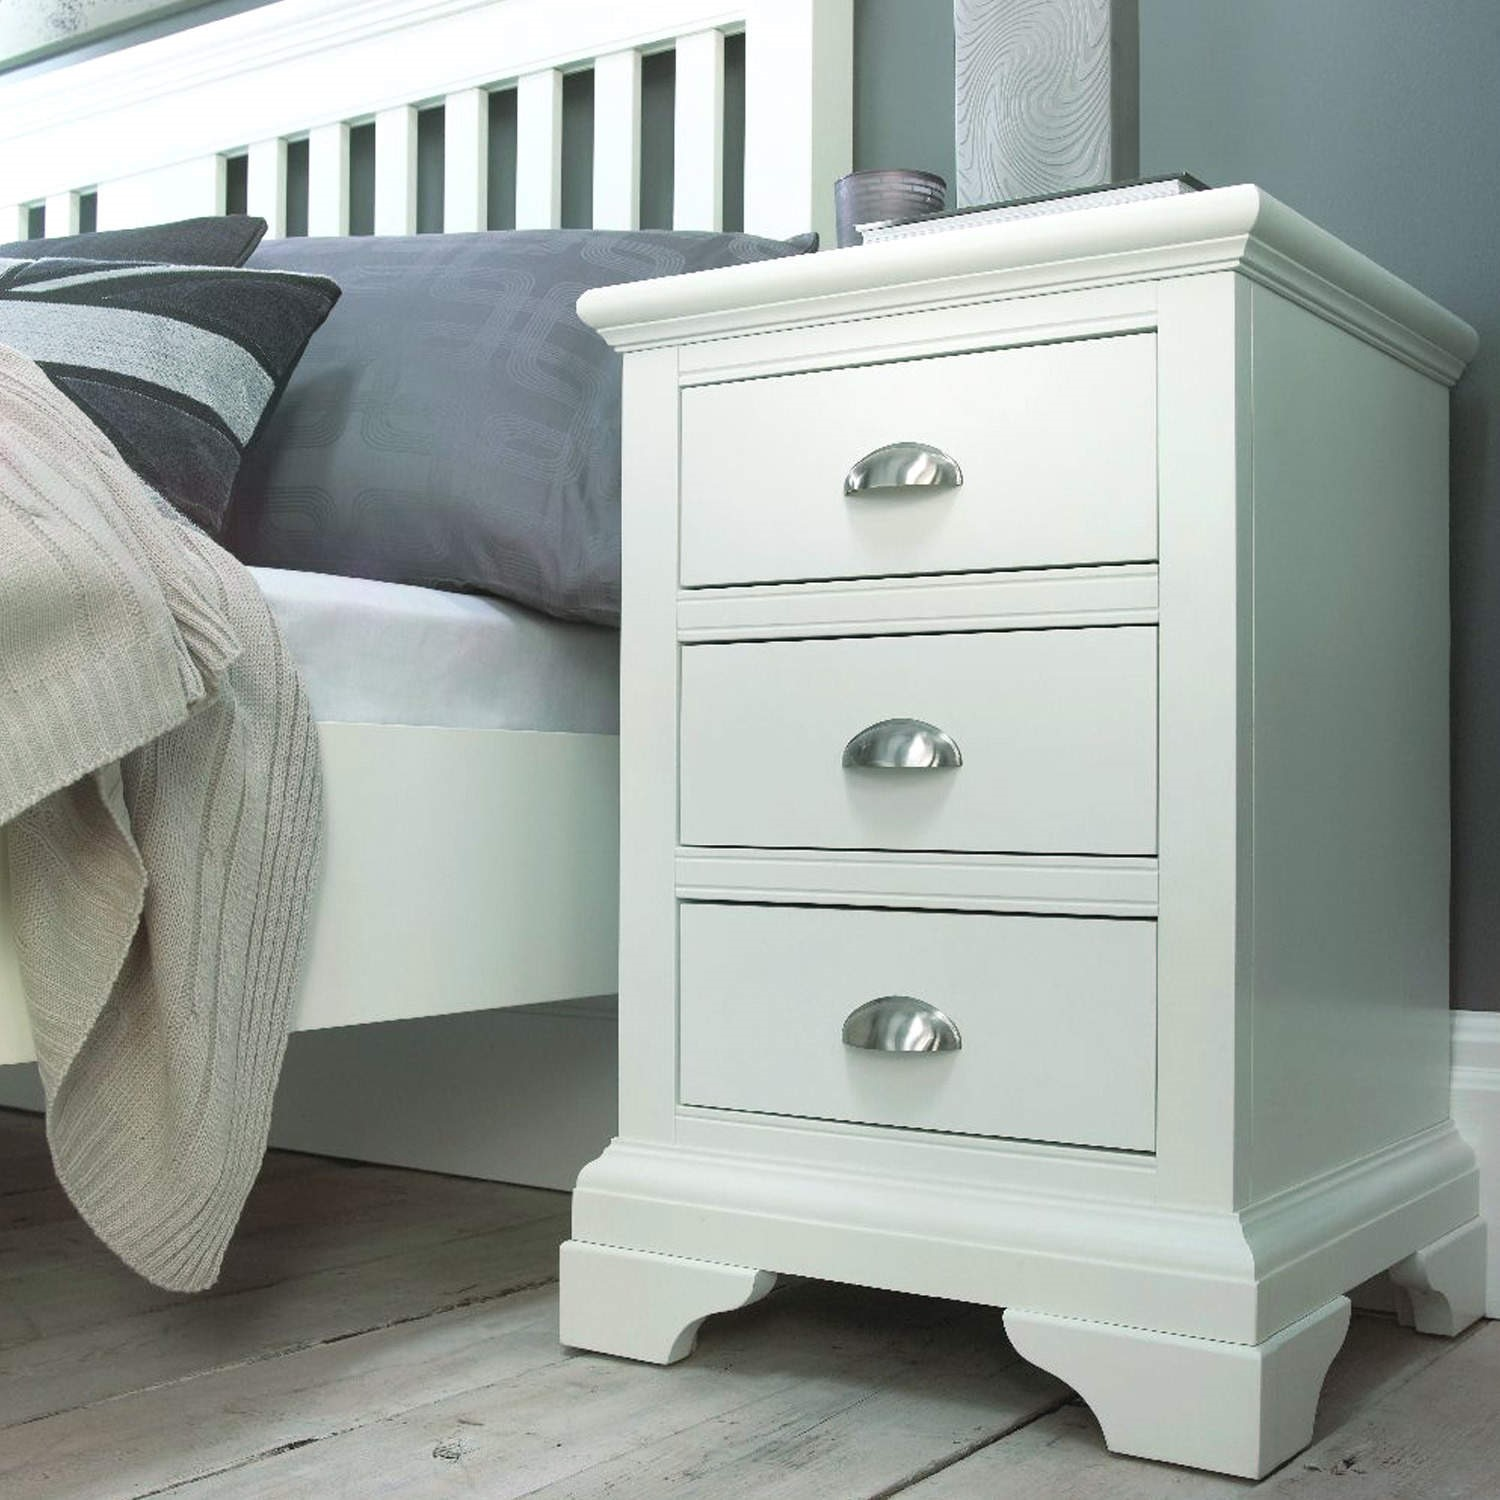 Bentley Designs H&stead White 3 Drawer Bedside Table & Bentley Designs Hampstead White 3 Drawer Bedside Table | Furniture123